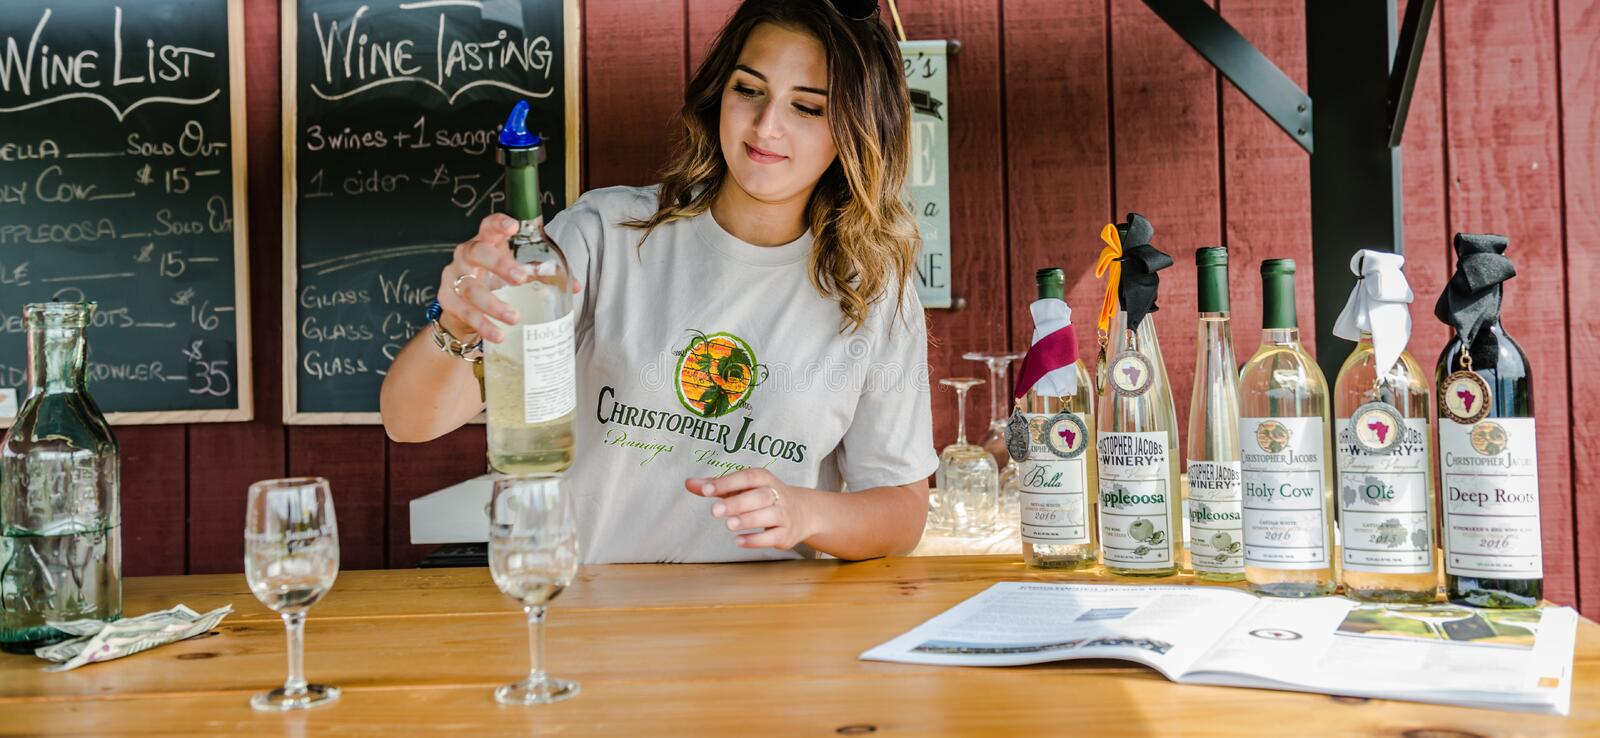 Hudson Valley Wine Tasting Station. Girl pours wine for wine tasting at Christopher Jacobs Winery in Pine Bush, NY stock images